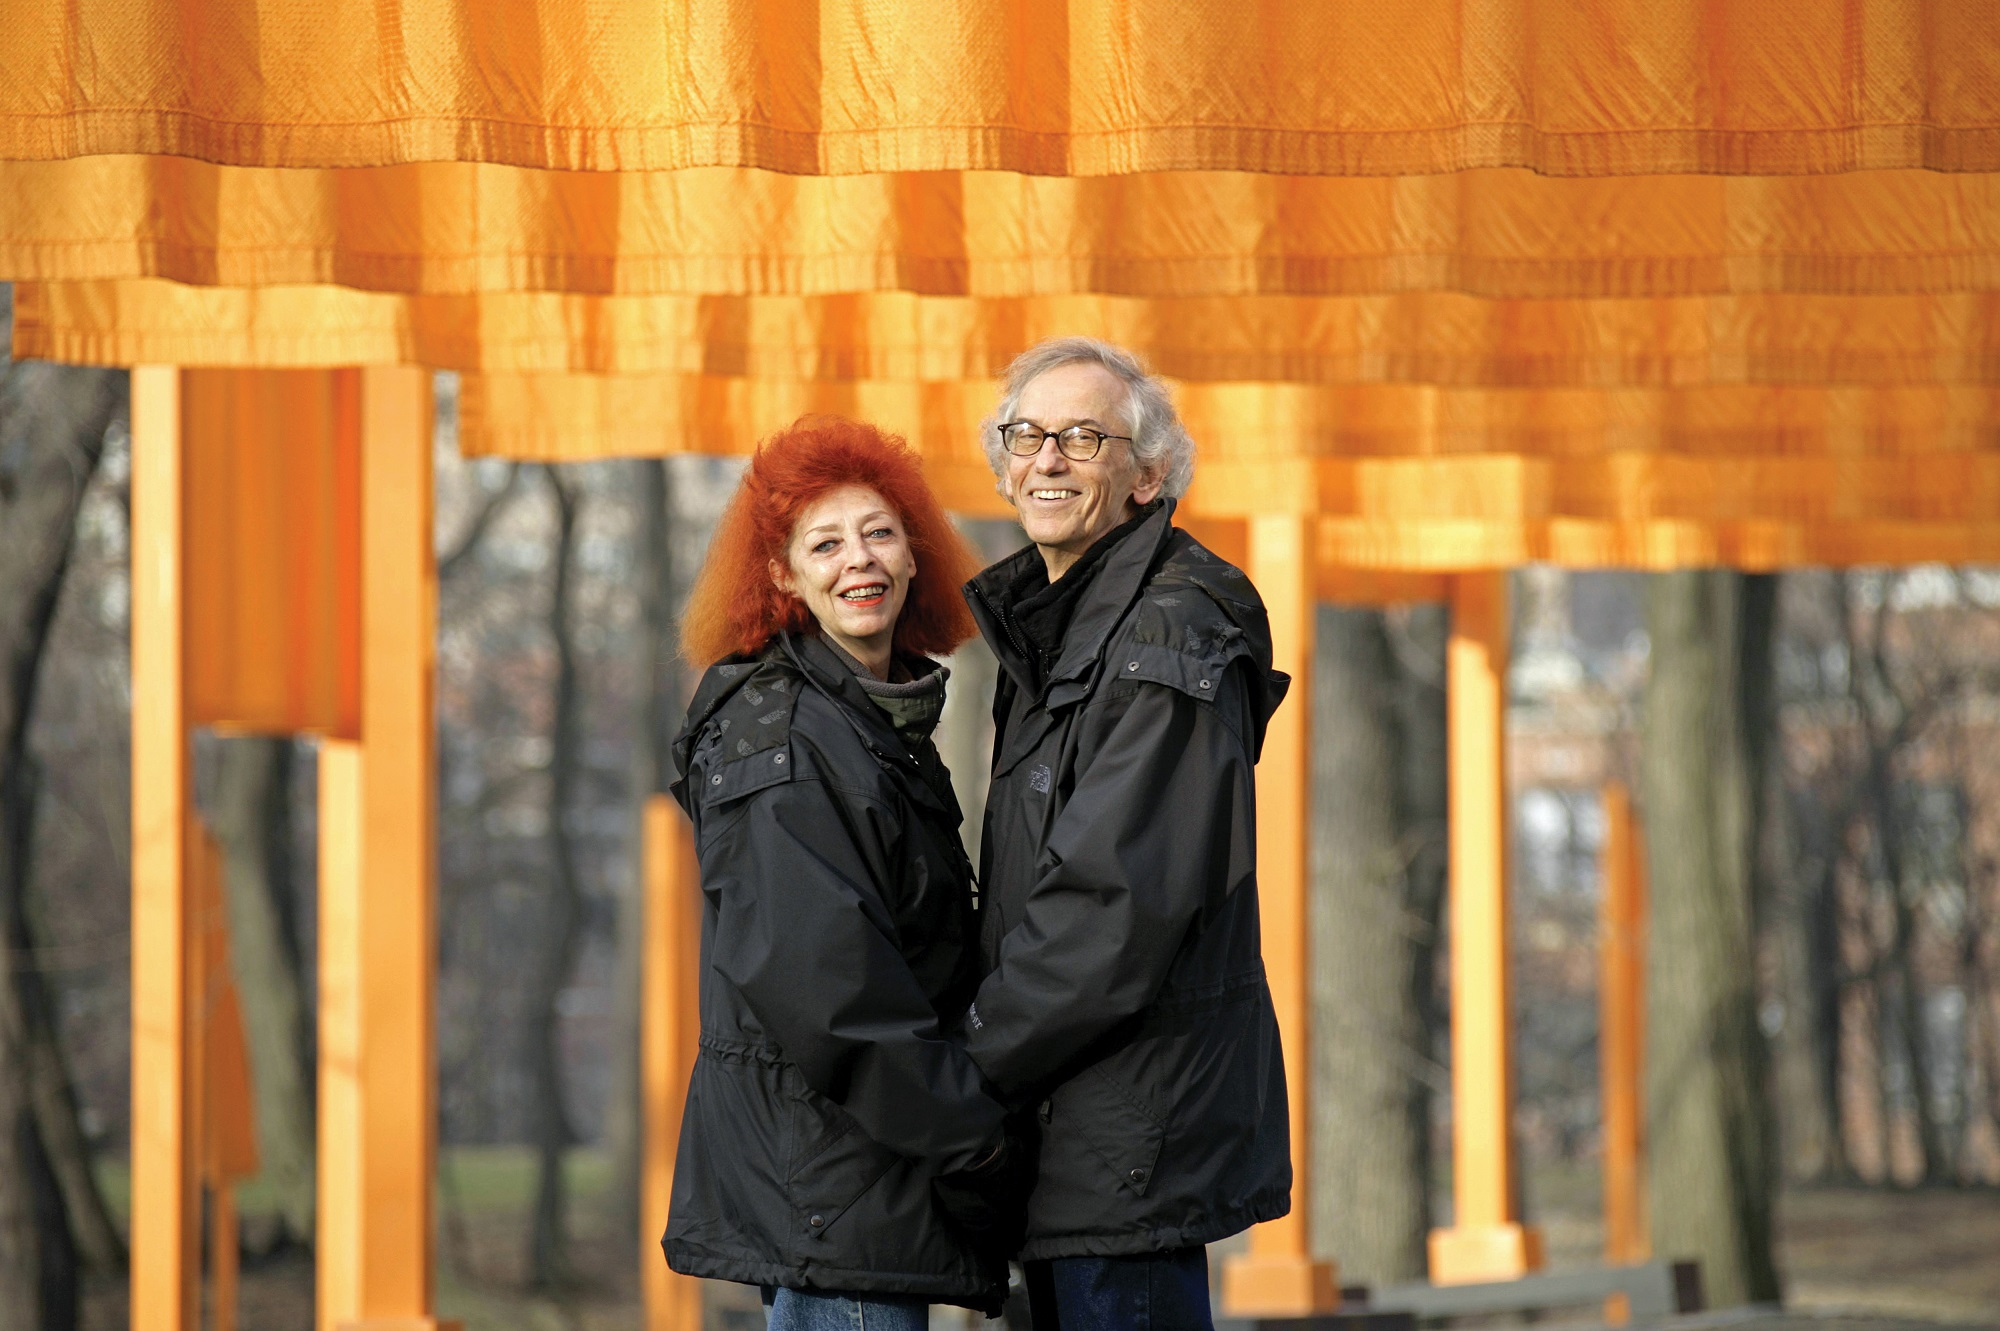 Christo and Jeanne-Claude at The Gates, February 2005 Photo: Wolfgang Volz